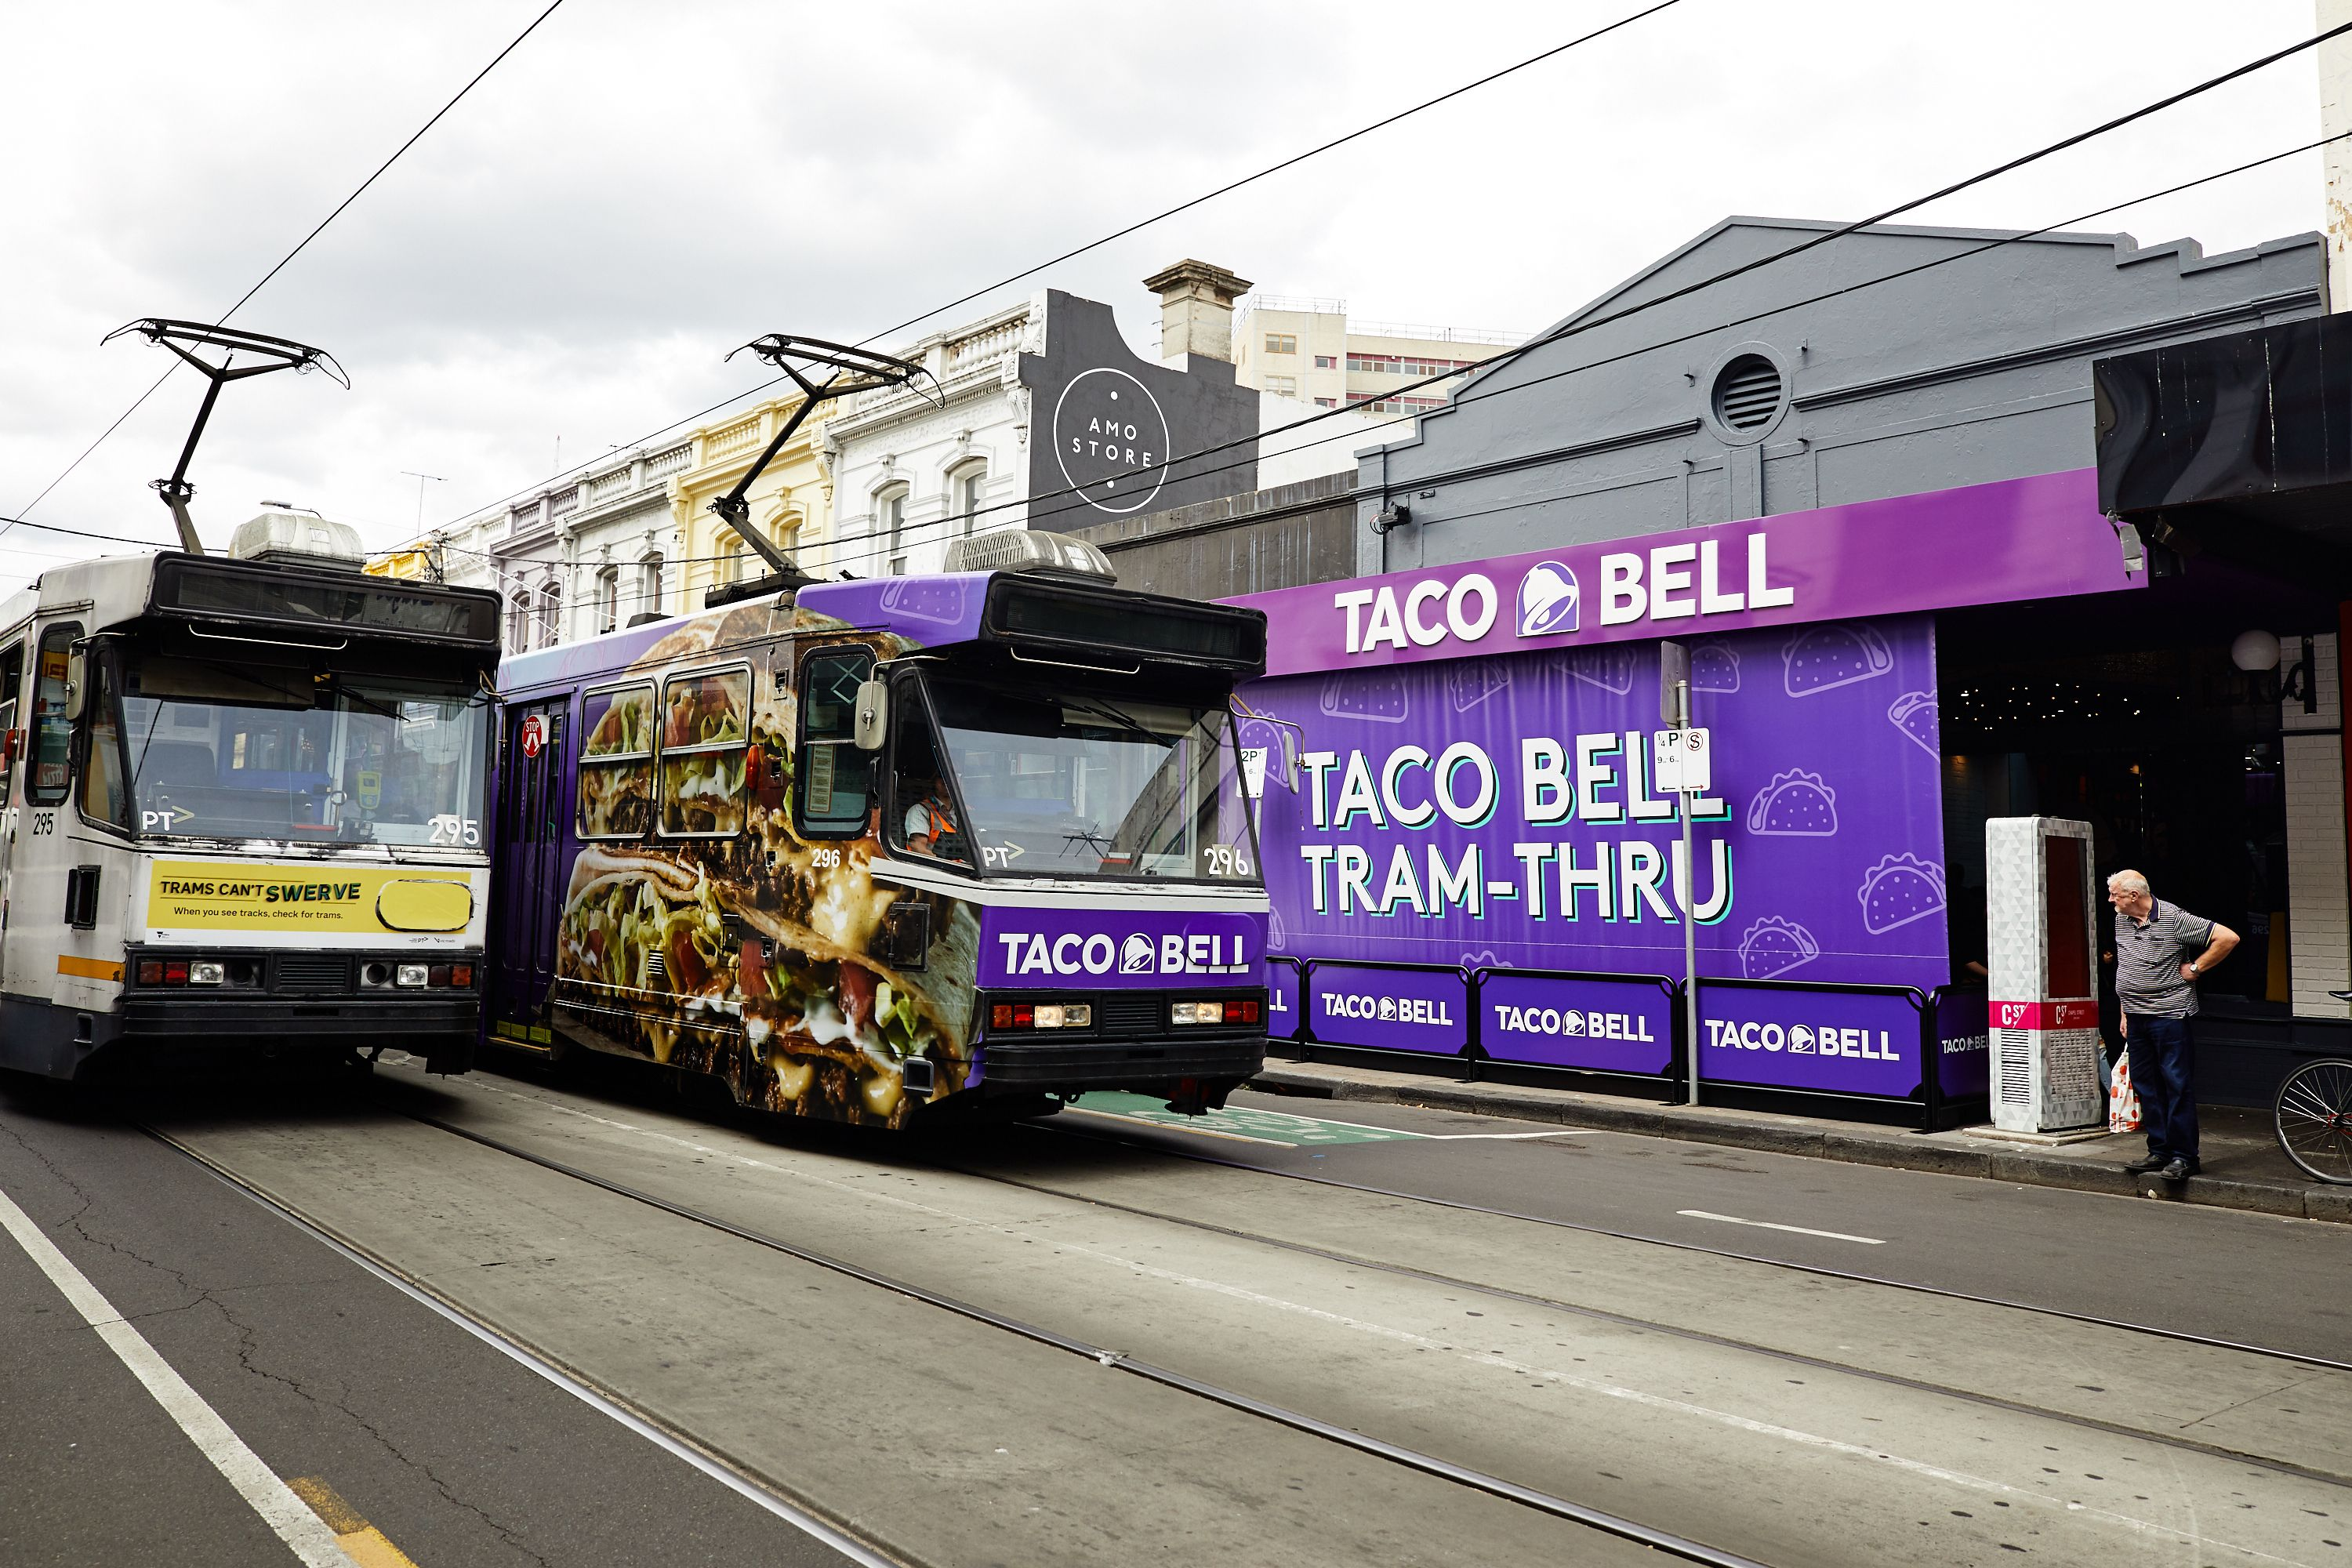 Melbourne Taco Bell launches with world-first | Inside Franchise Business